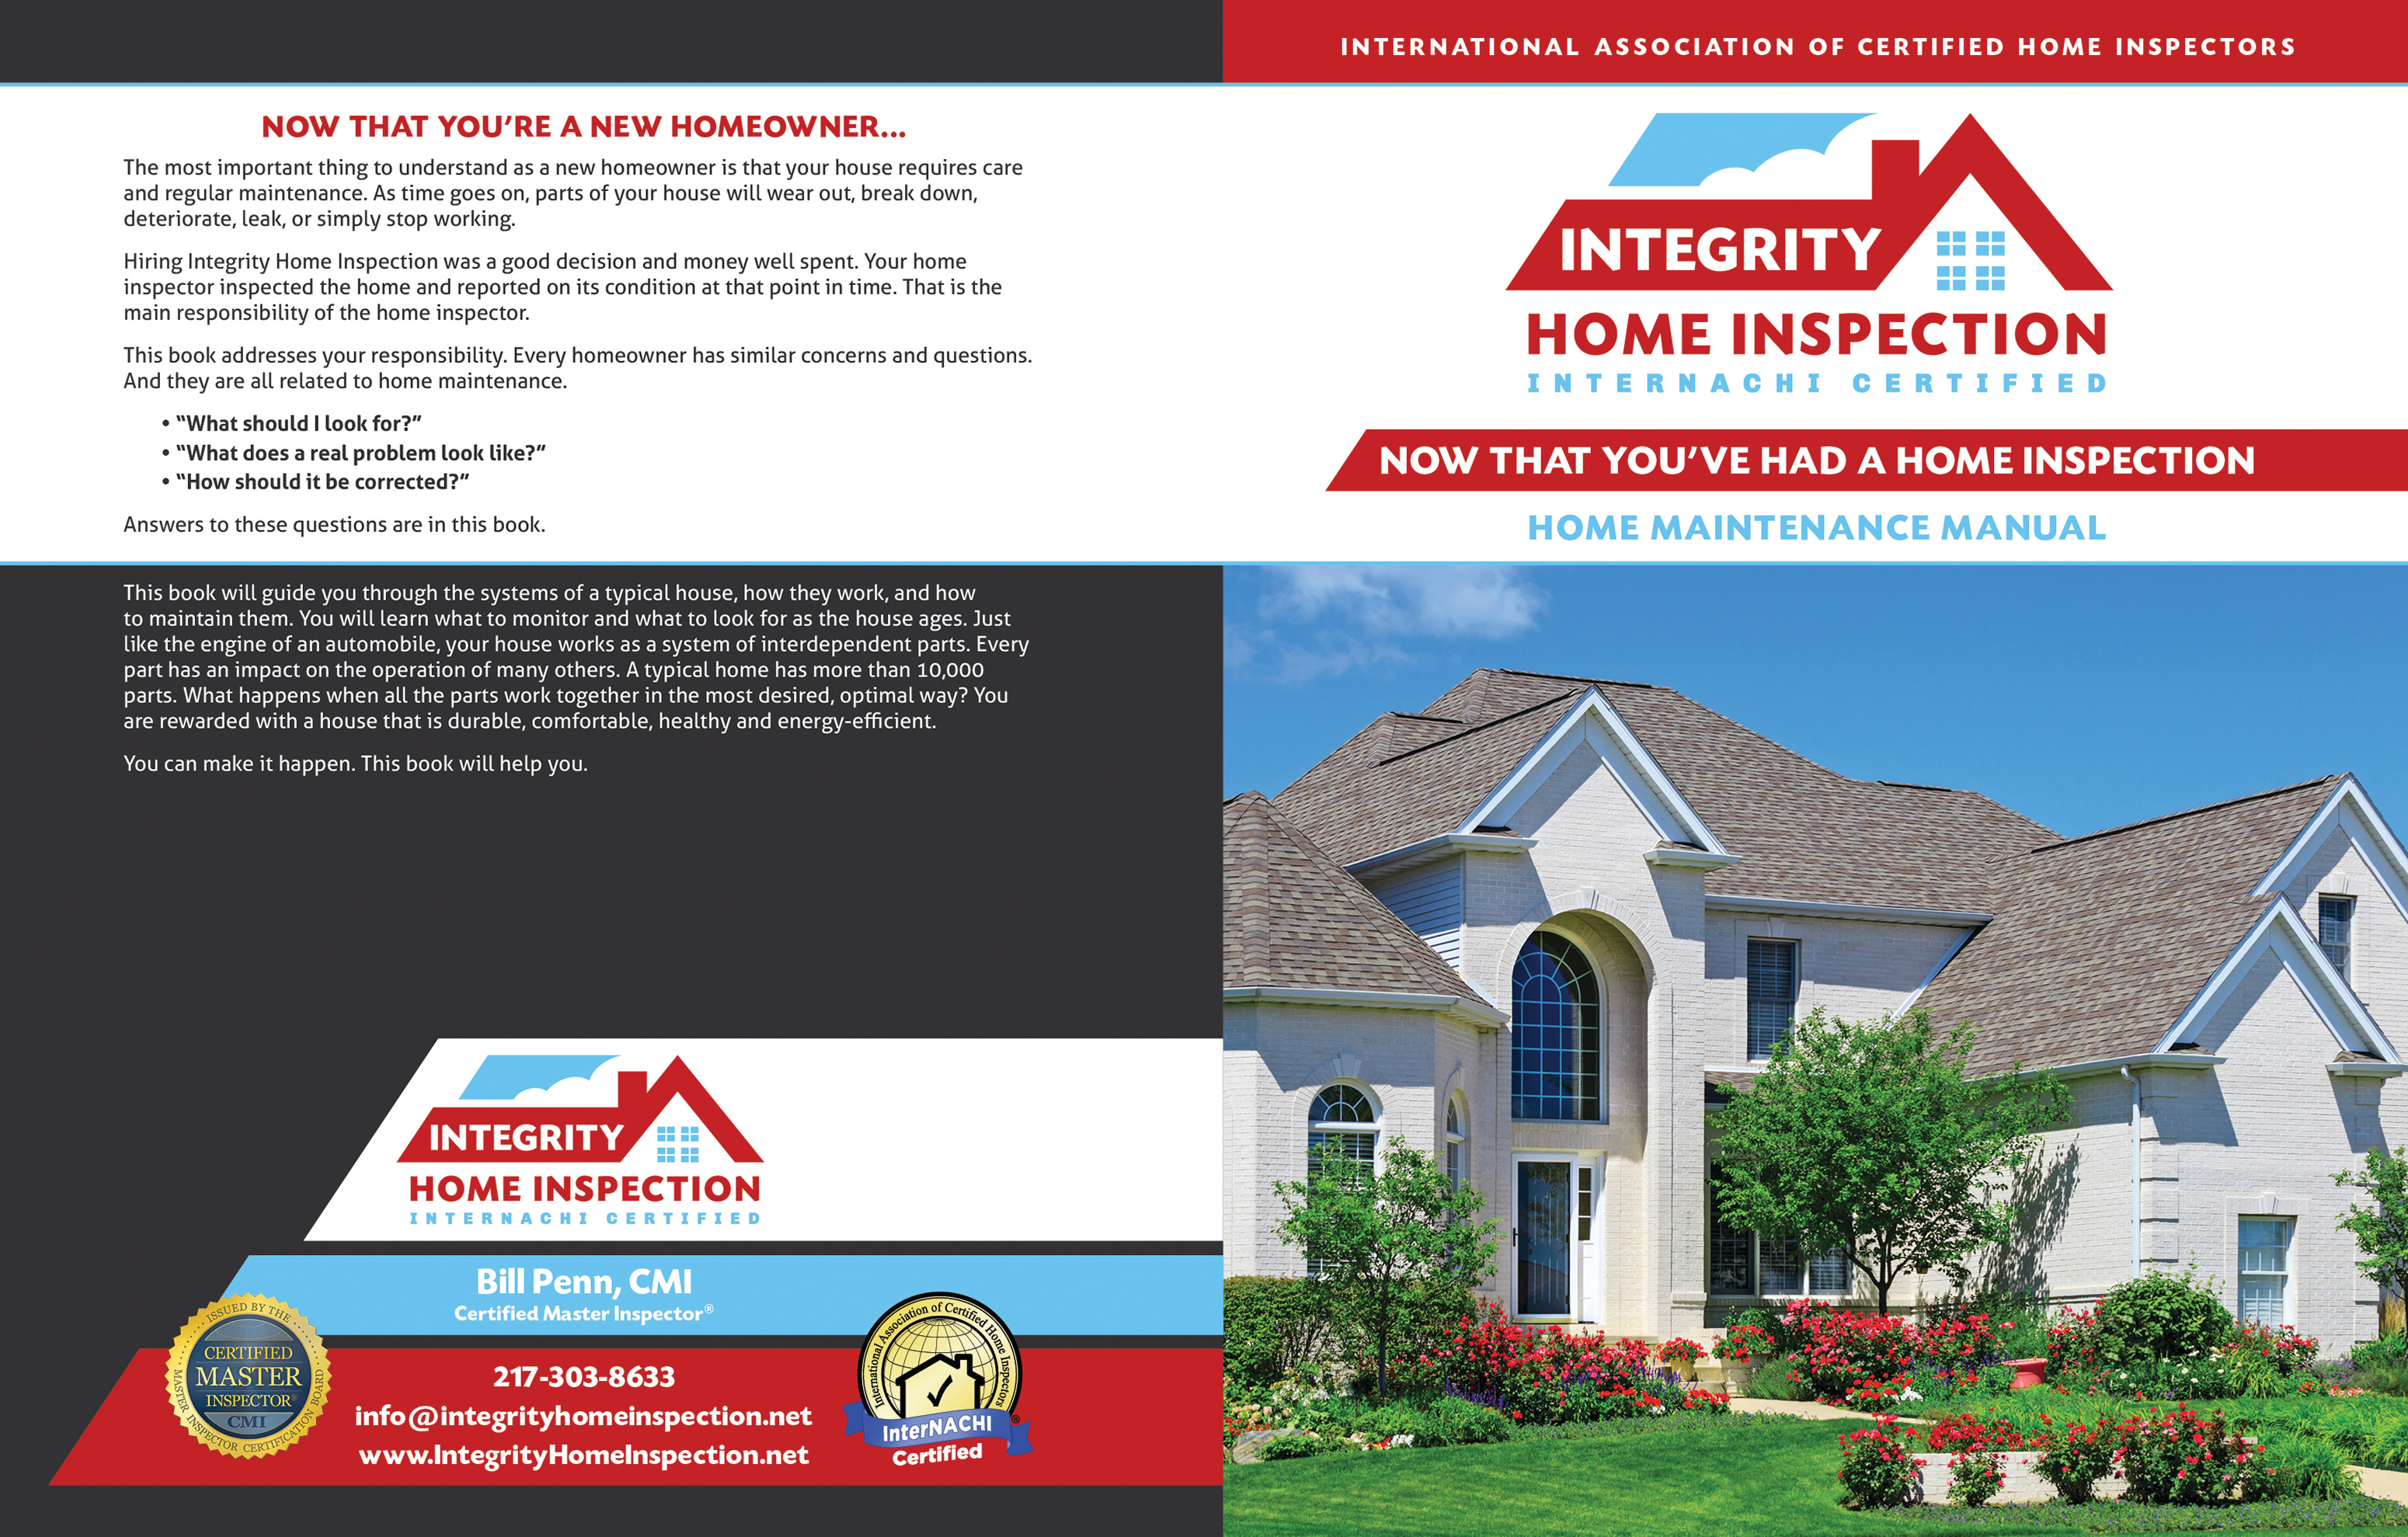 Custom Home Maintenance Book for Integrity Home Inspections.